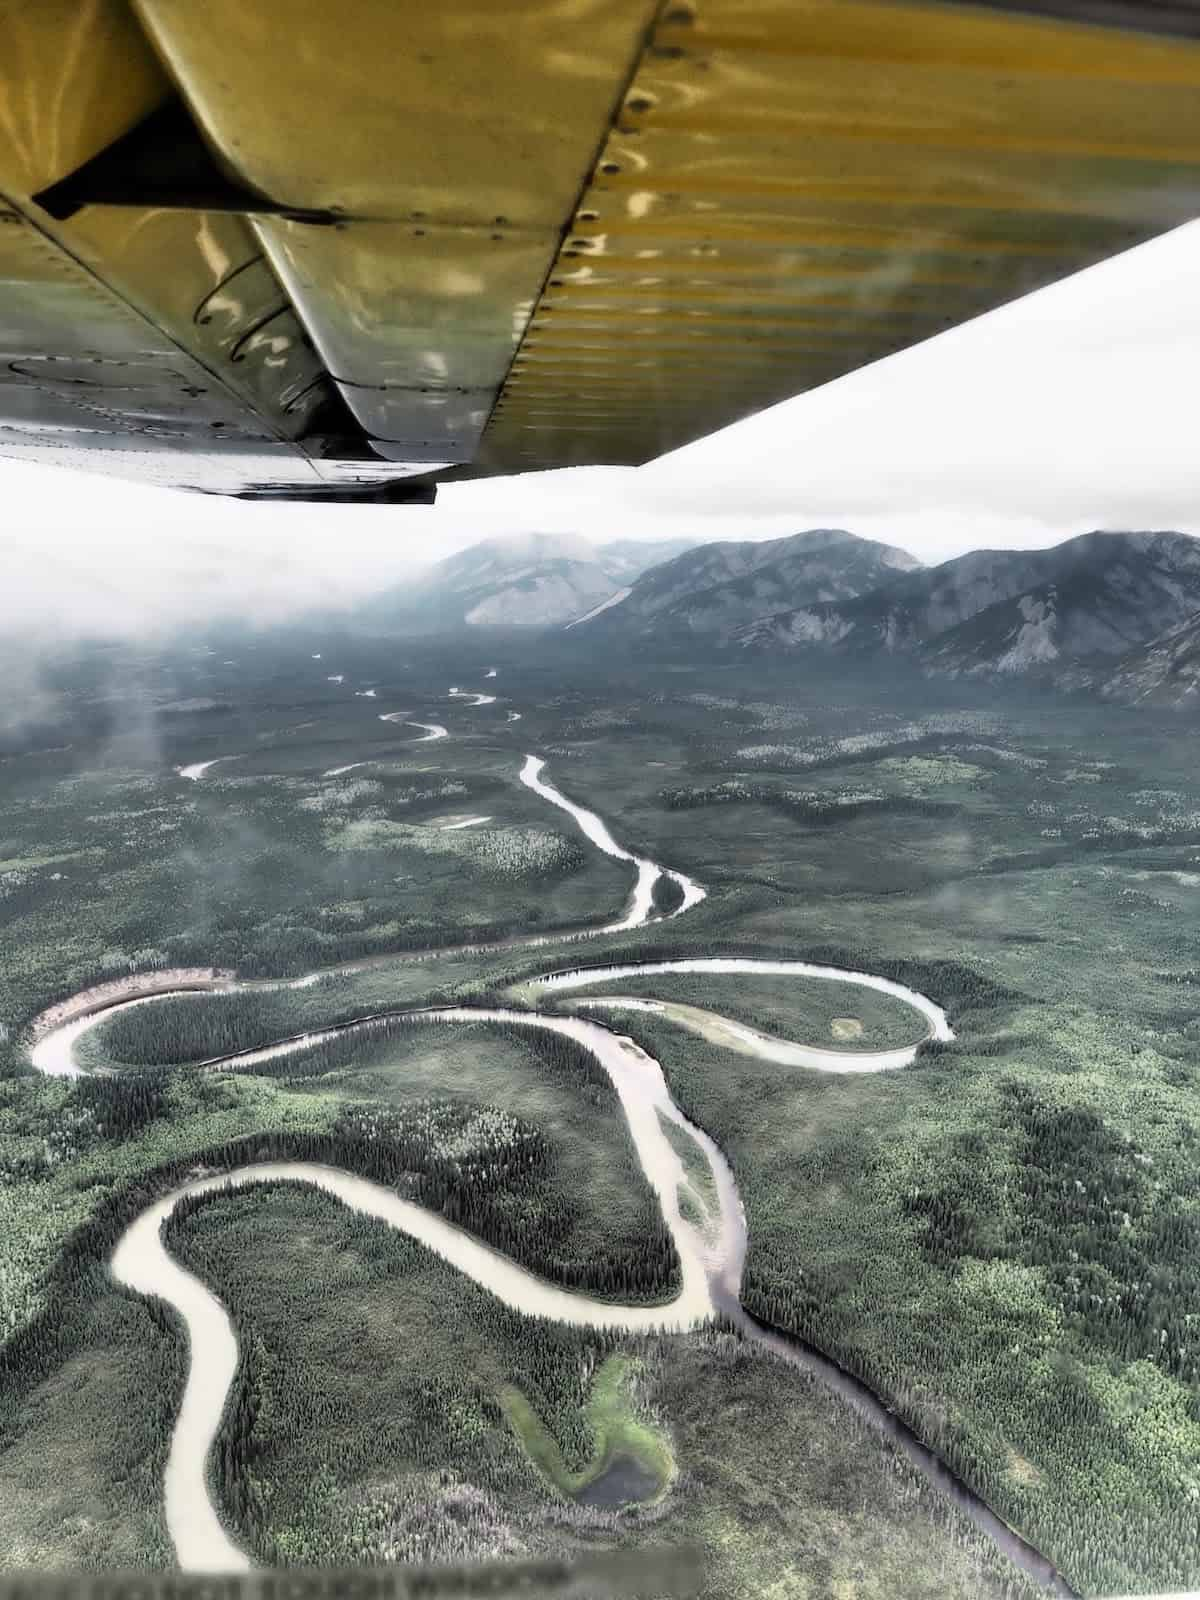 Nahanni River by Canoe: S-Curves in the river viewed from the sky.